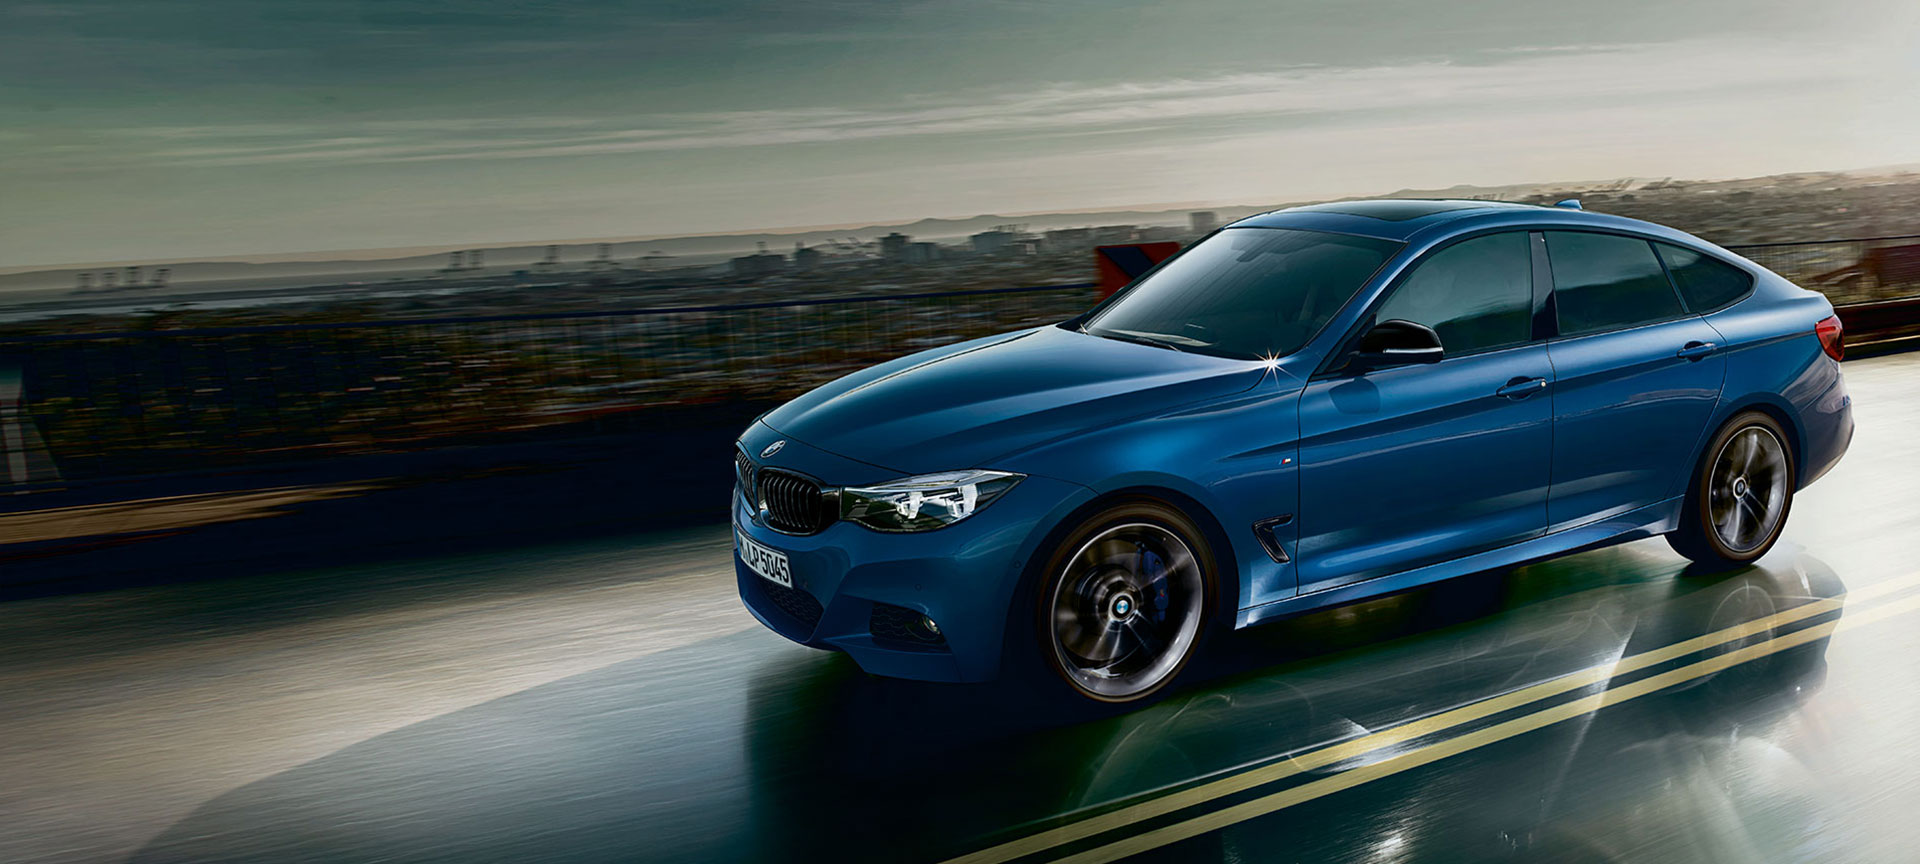 The BMW 3 GT